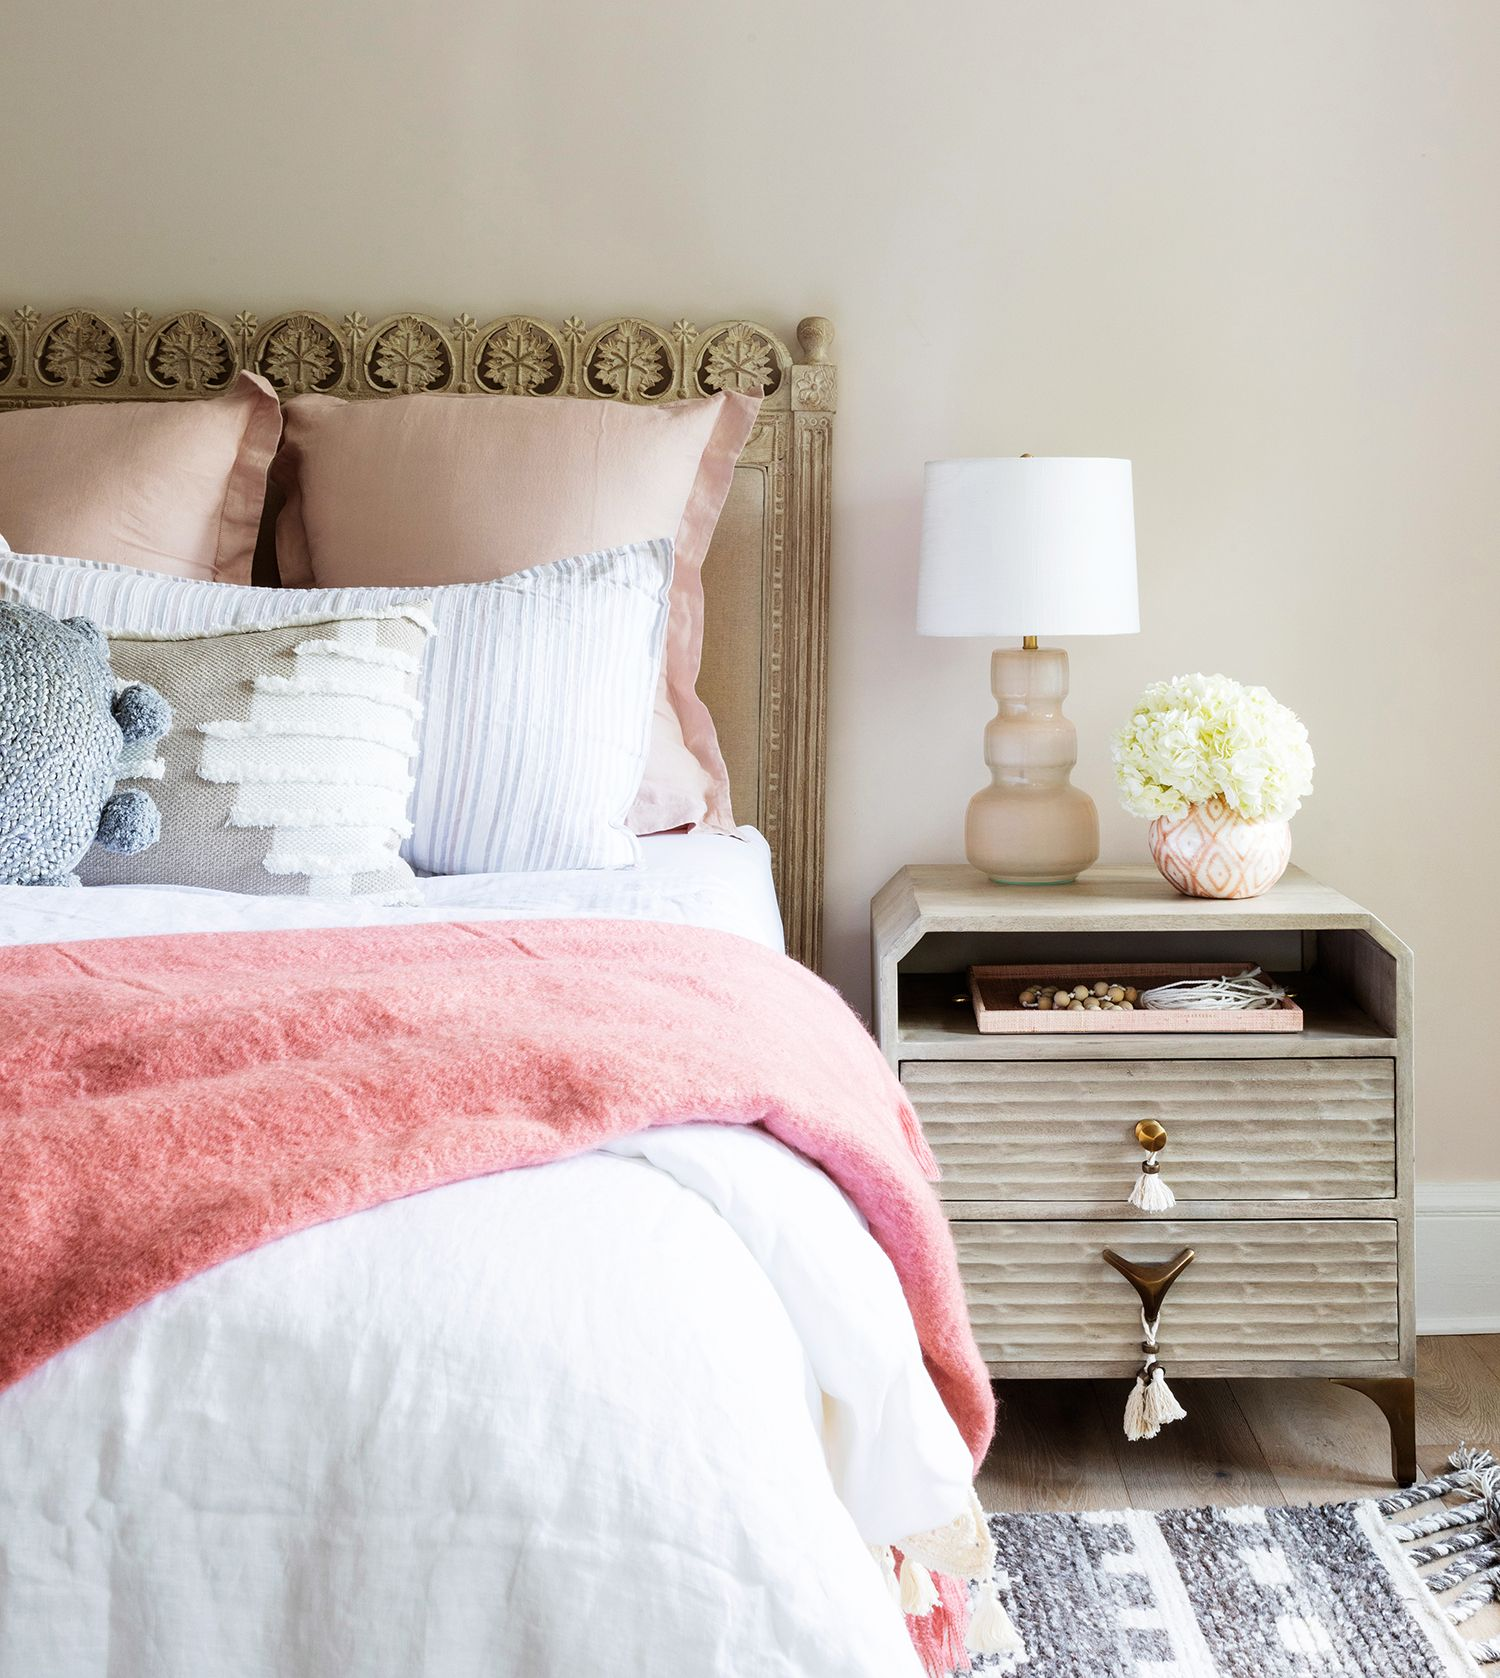 65 bedroom decorating ideas how to